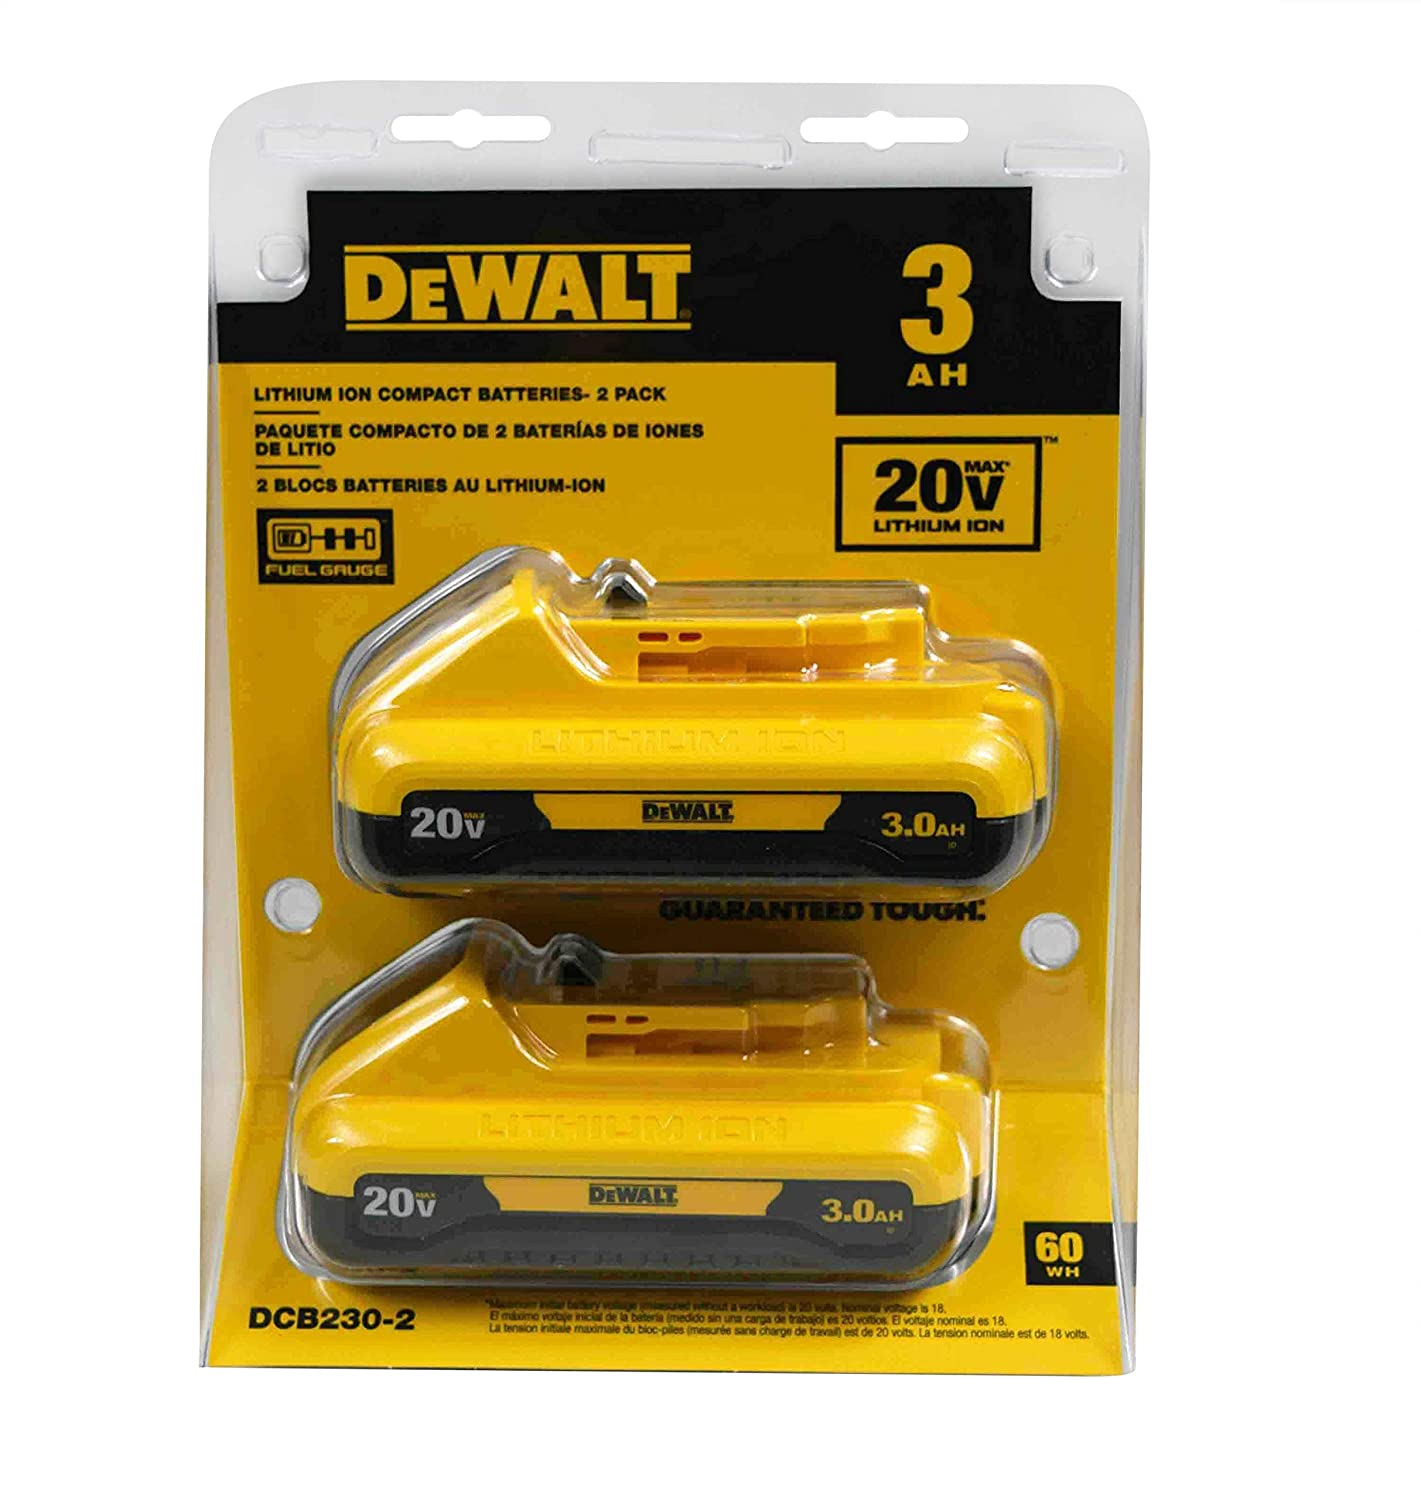 DEWALT DCB230-220V MAXLithium Ion Battery Pack 3.0Ah, 2 pack